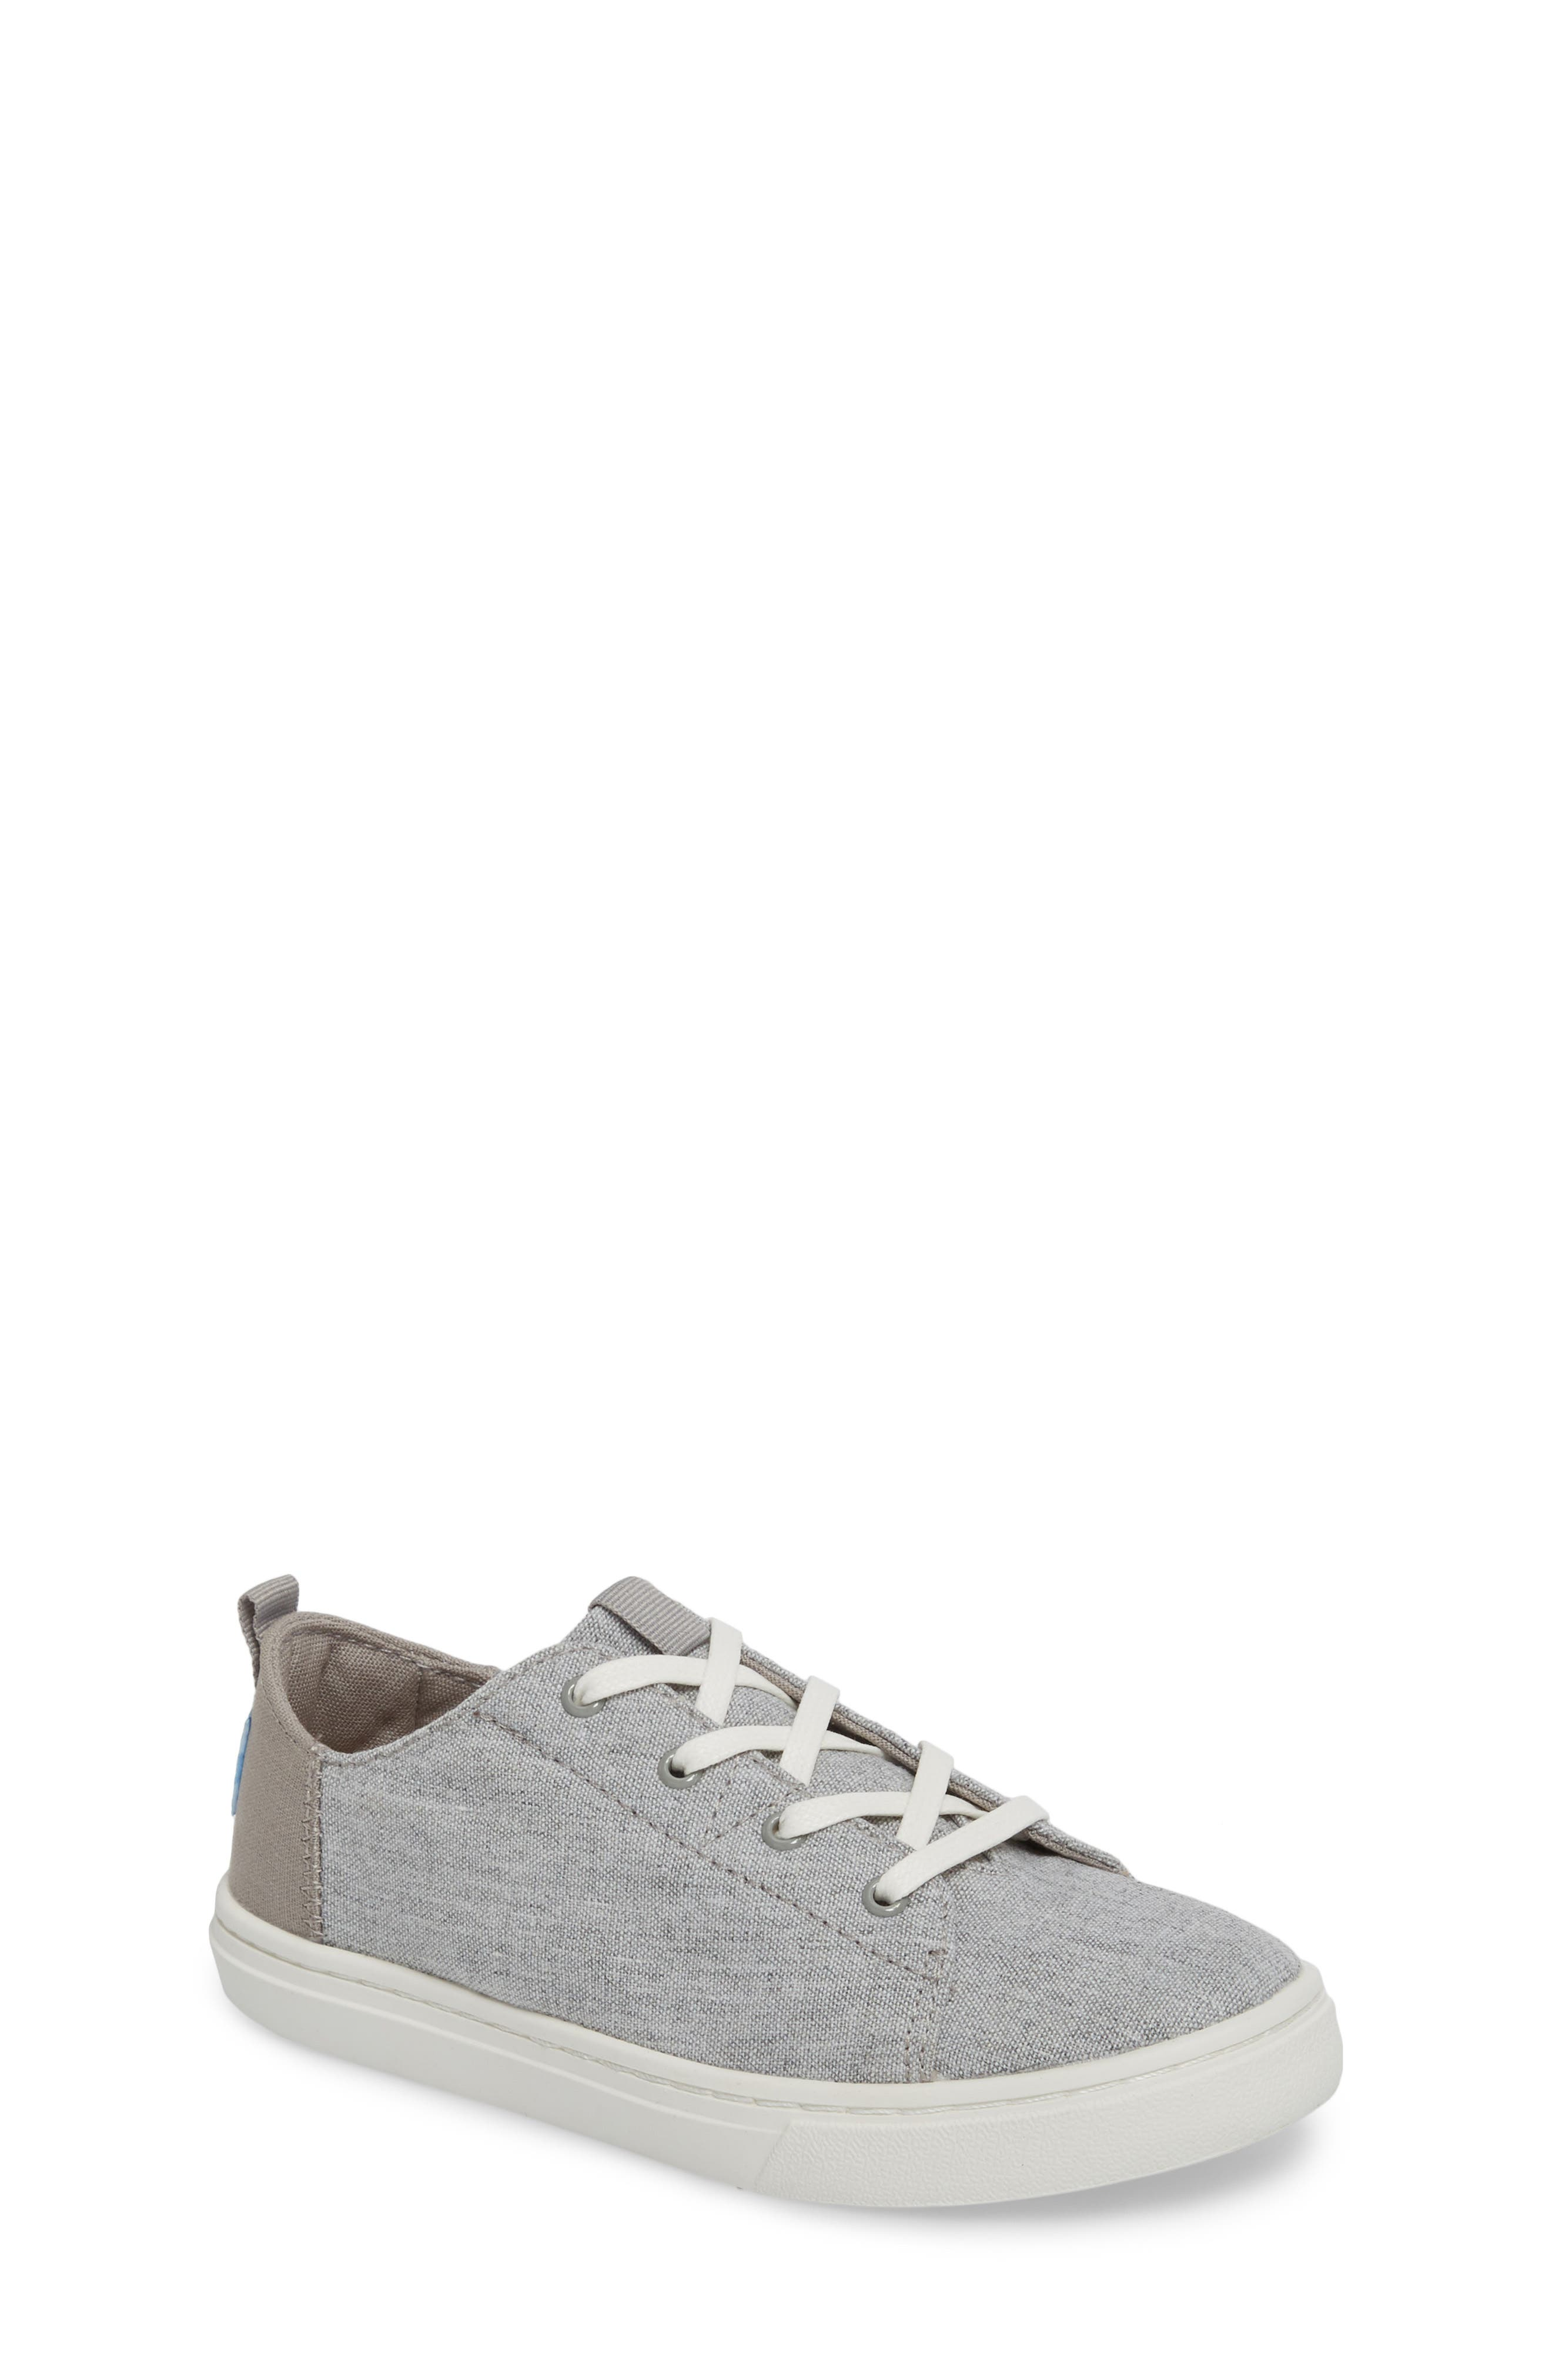 Lenny Sneaker,                             Main thumbnail 1, color,                             DRIZZLE GREY SLUB CHAMBRAY